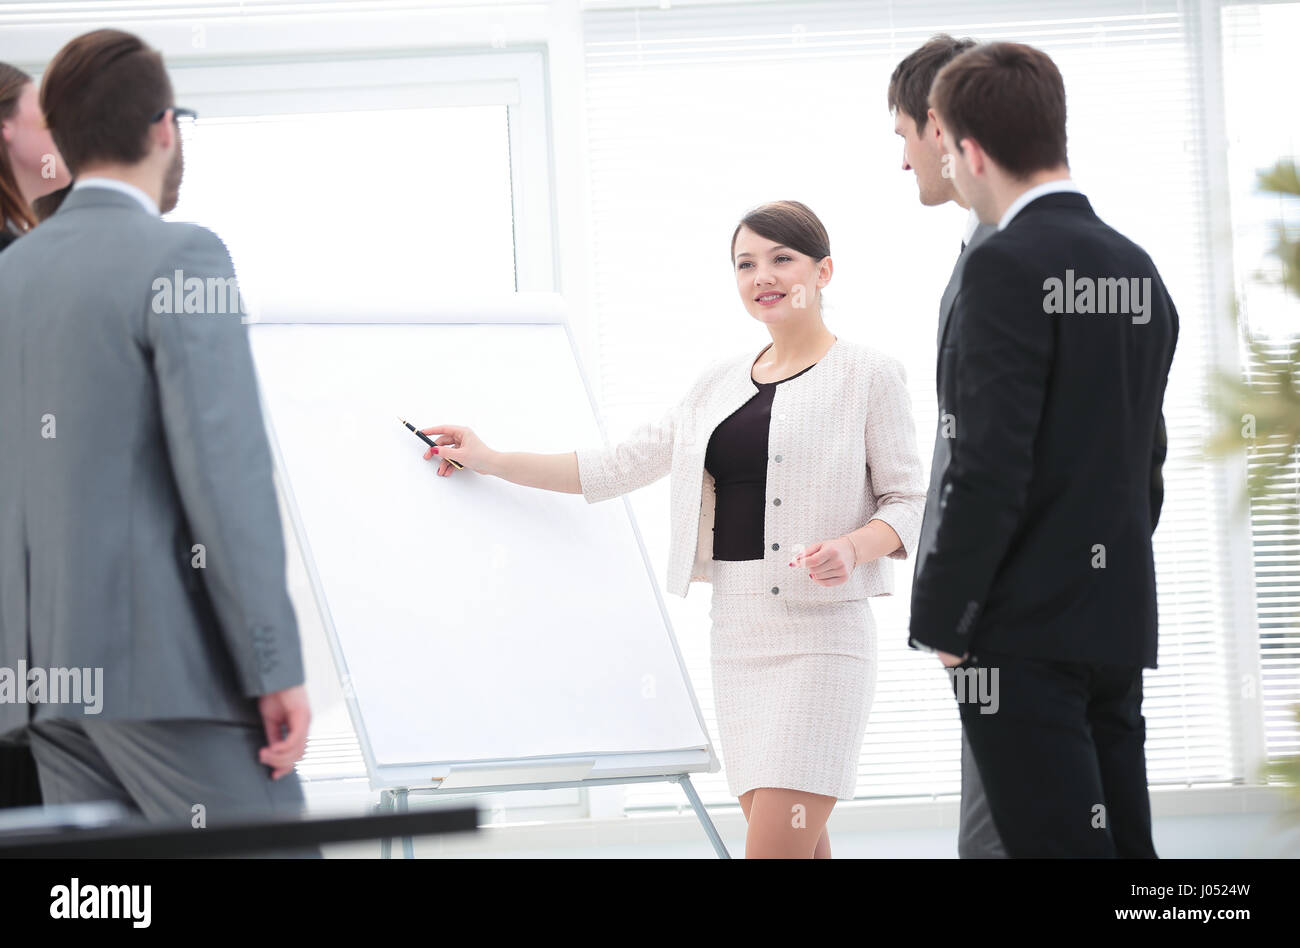 Business woman making a business presentation to a group - Stock Image